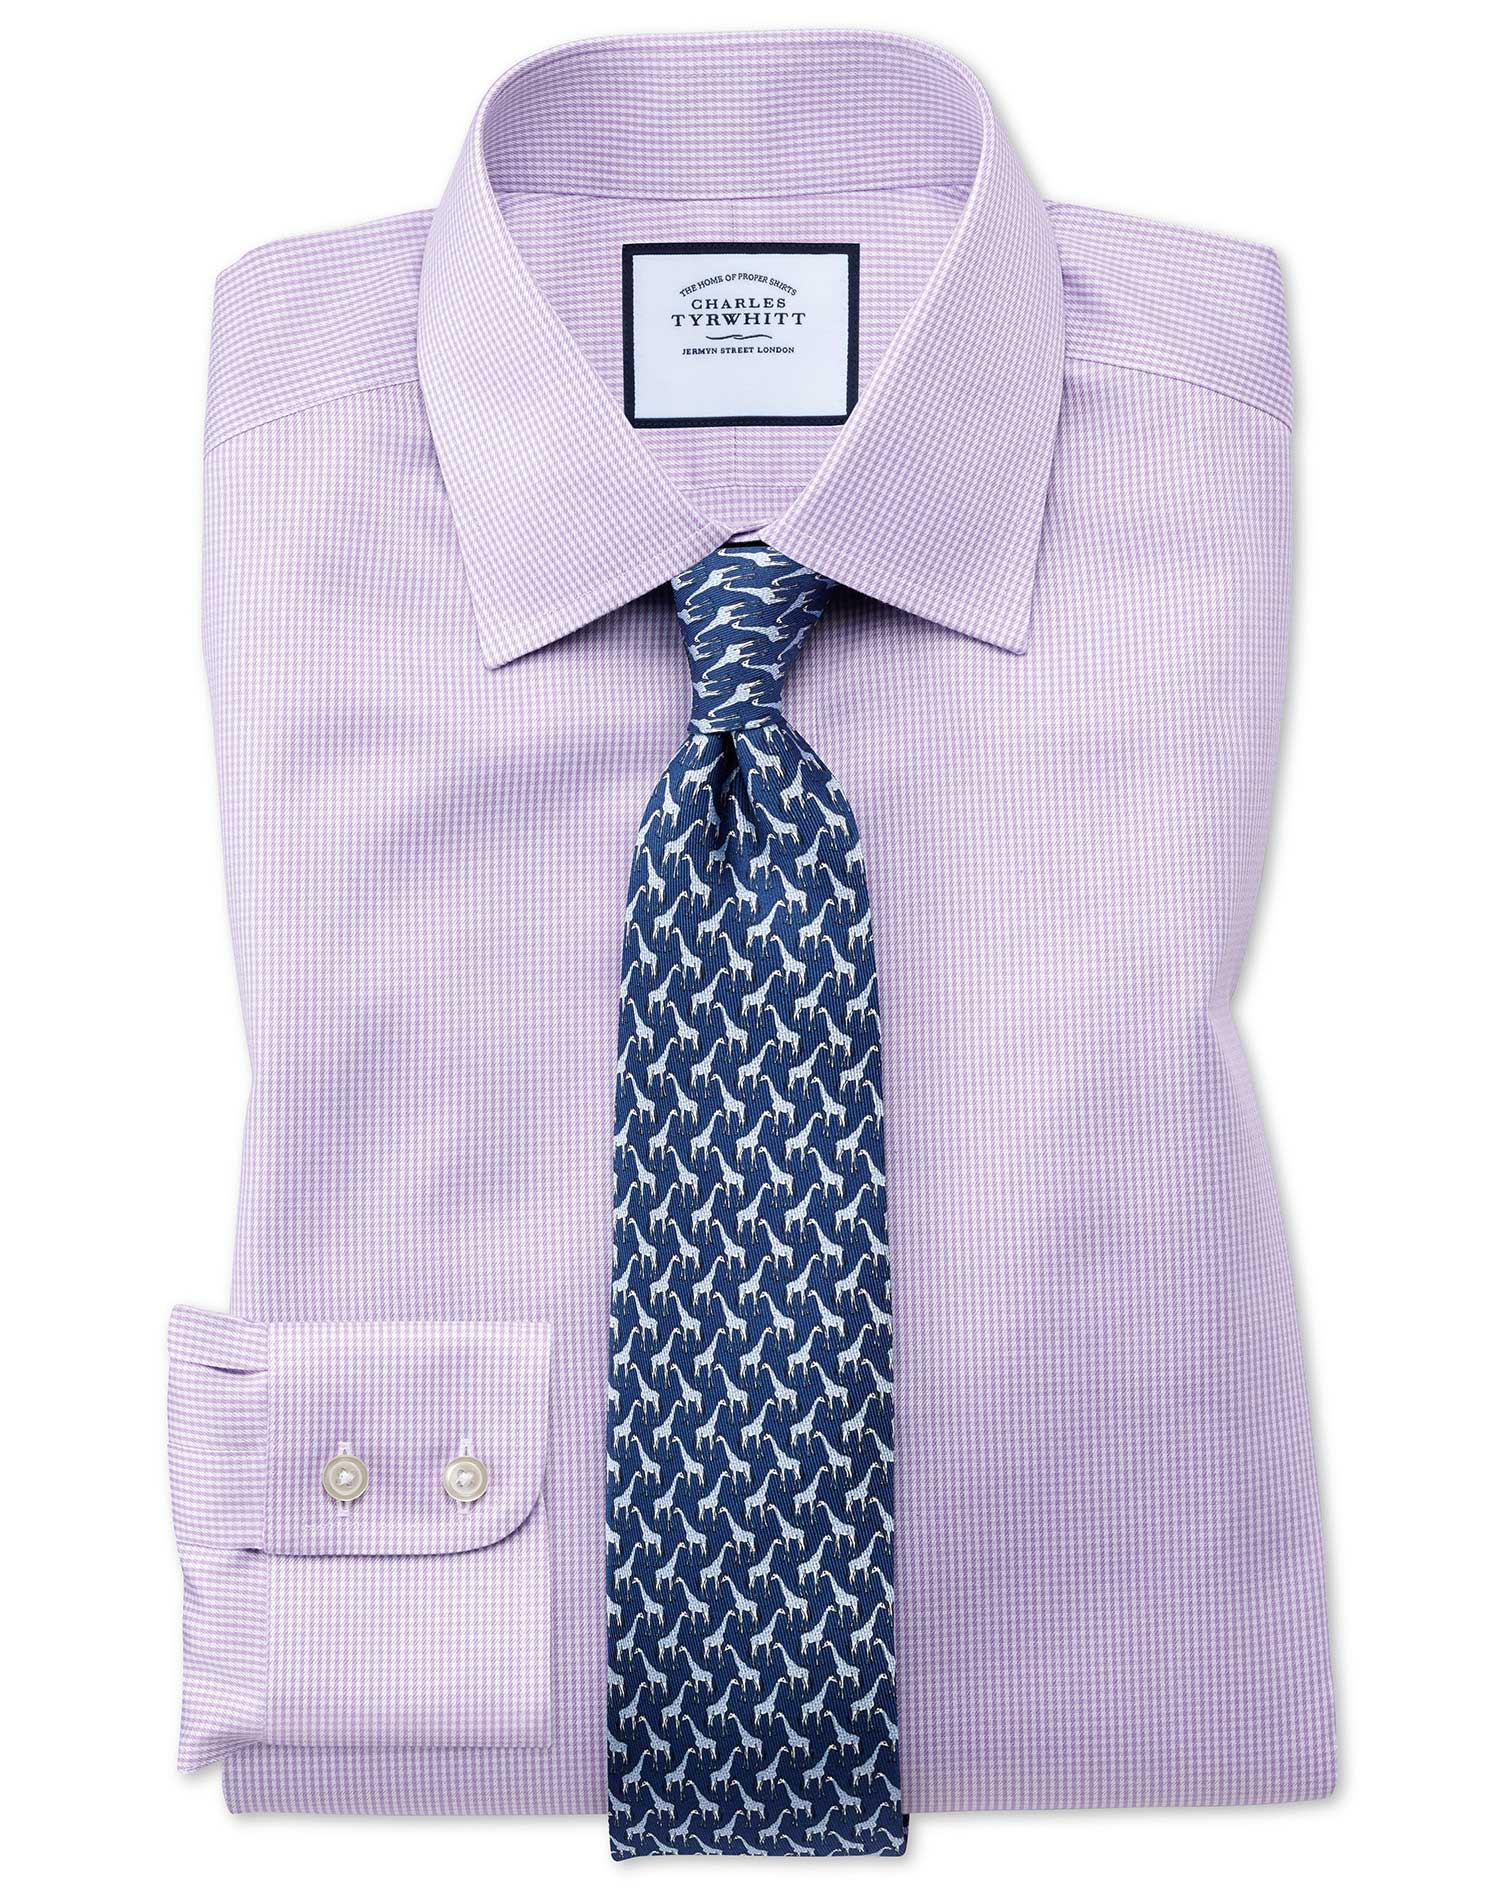 Slim Fit Non-Iron Lilac Puppytooth Cotton Formal Shirt by Charles Tyrwhitt